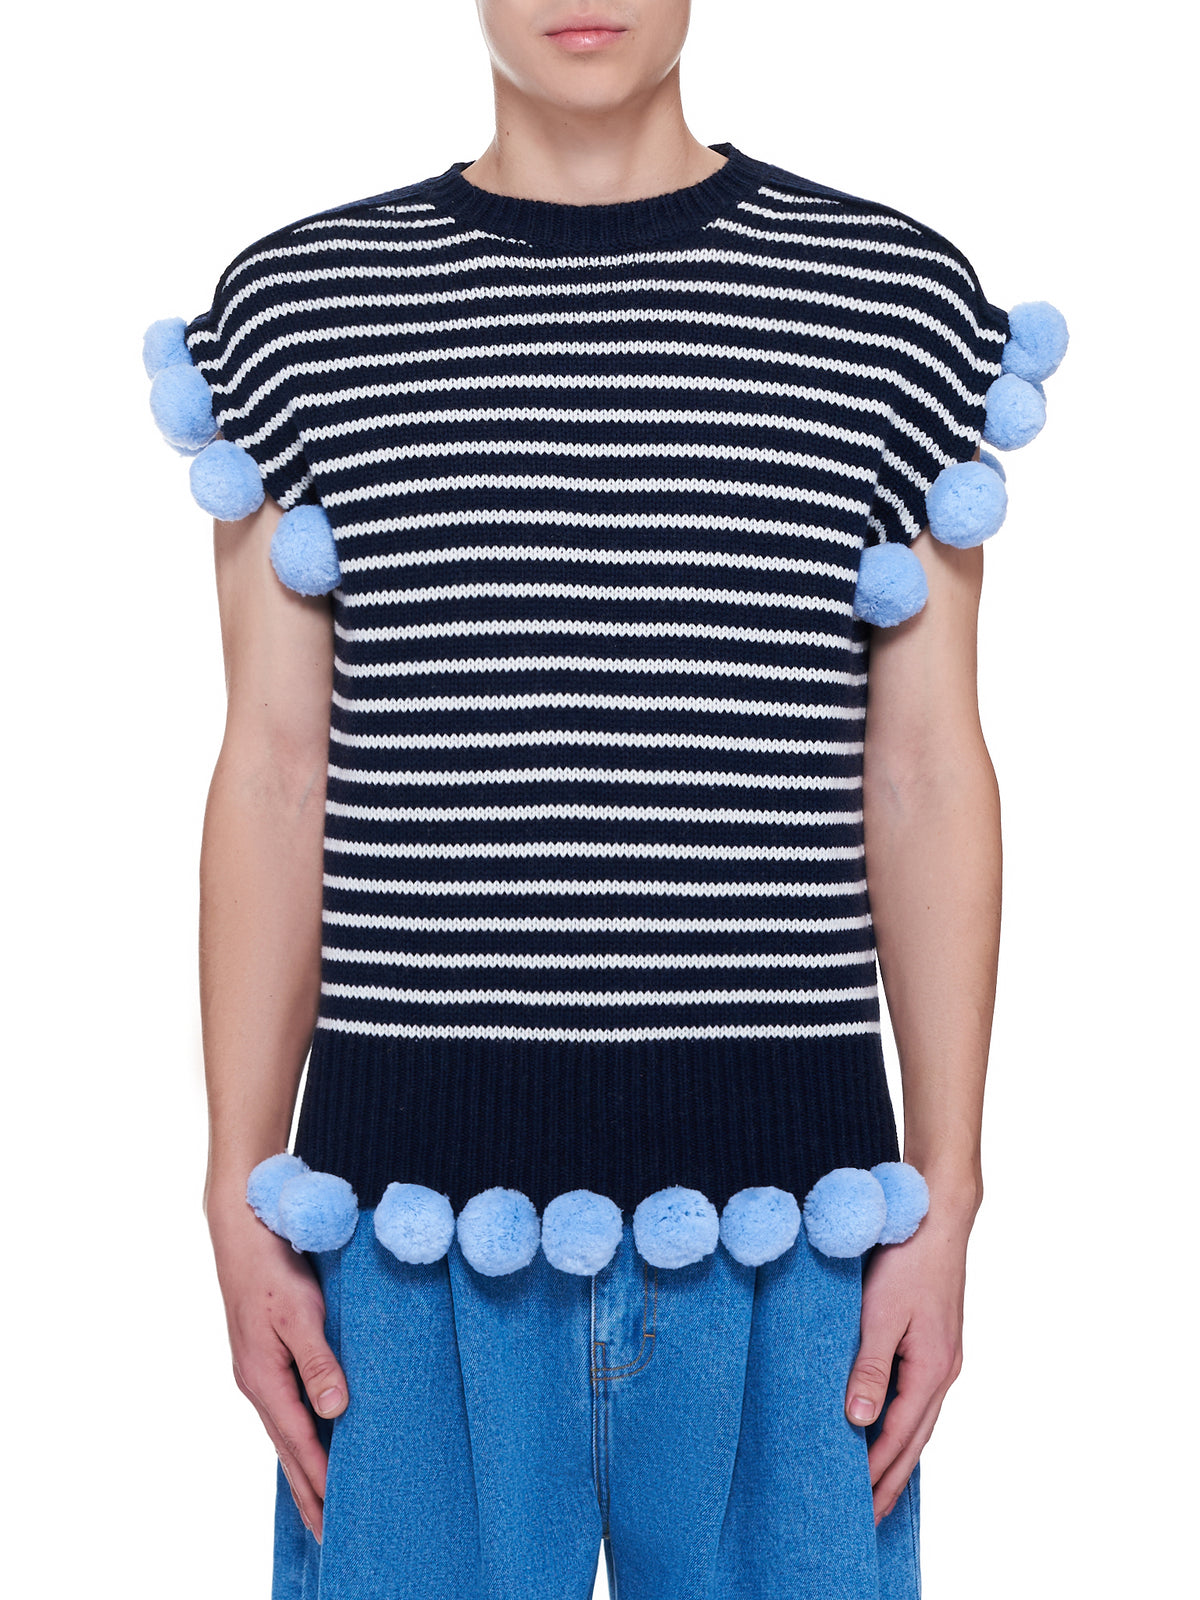 Wool Pom-Pom Sleeveless Sweater (KT0031-NAVY-OFFWHITE)